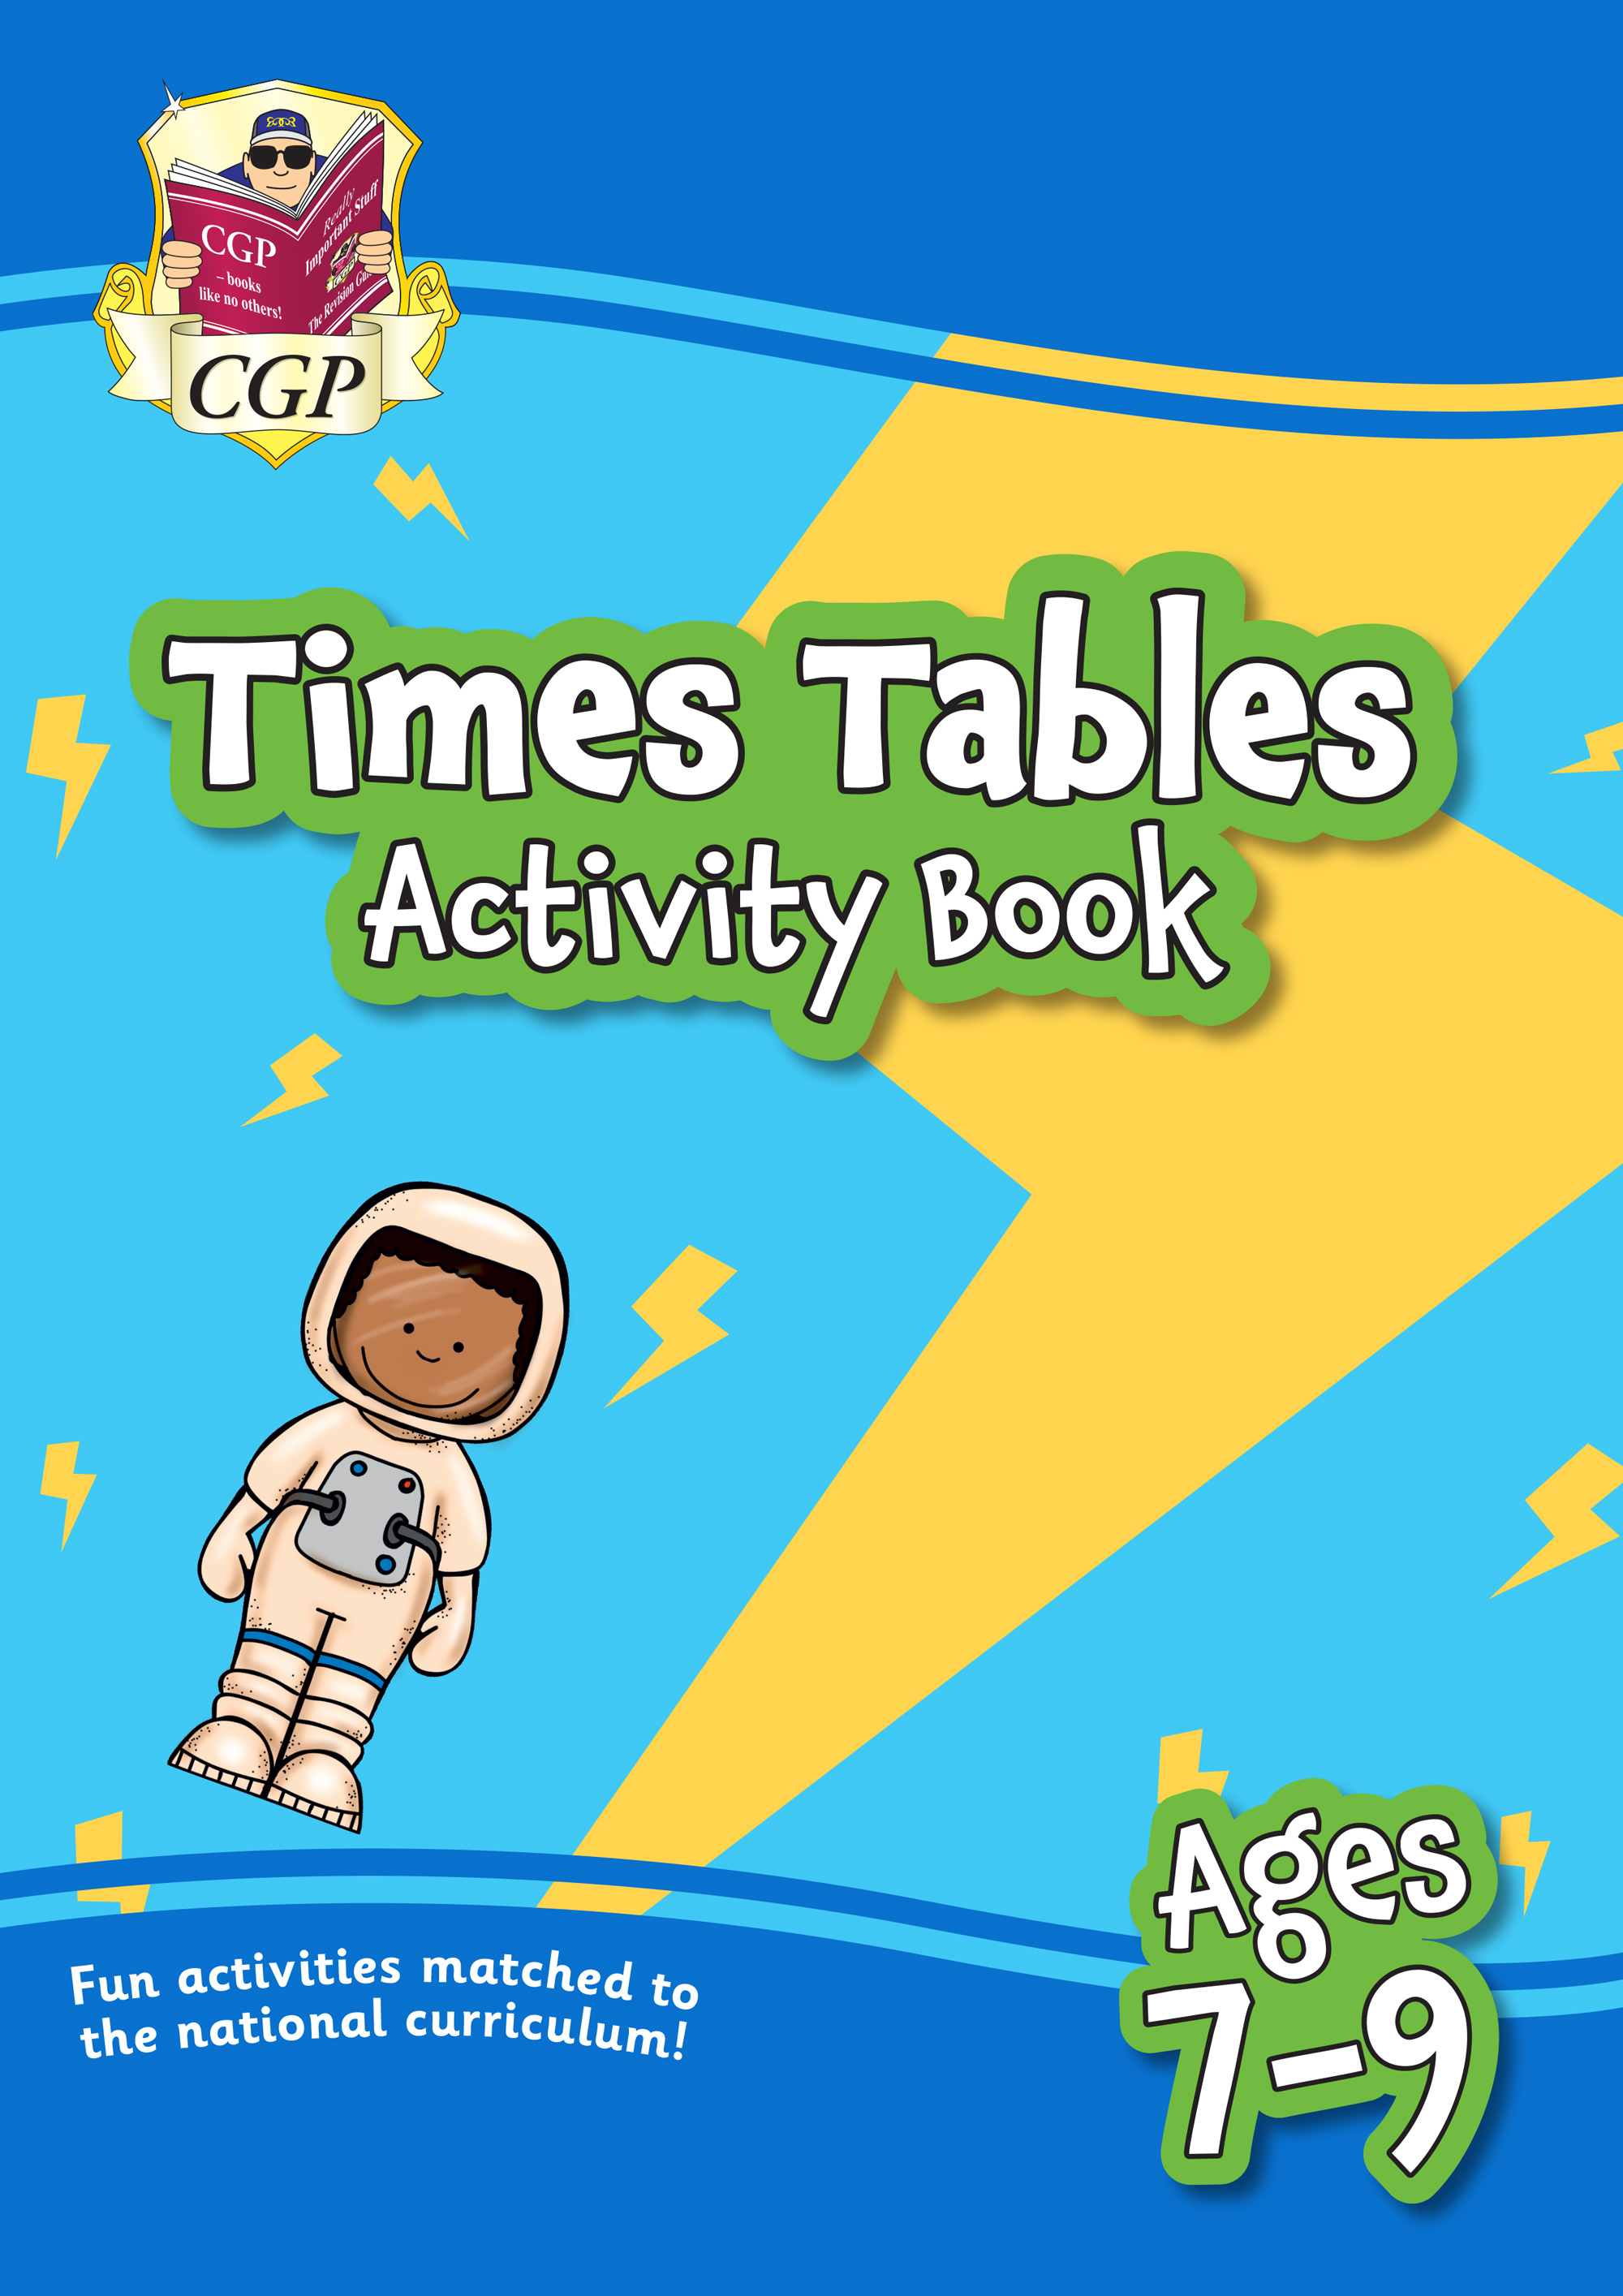 MPFTT21 - New Times Tables Home Learning Activity Book for Ages 7-9